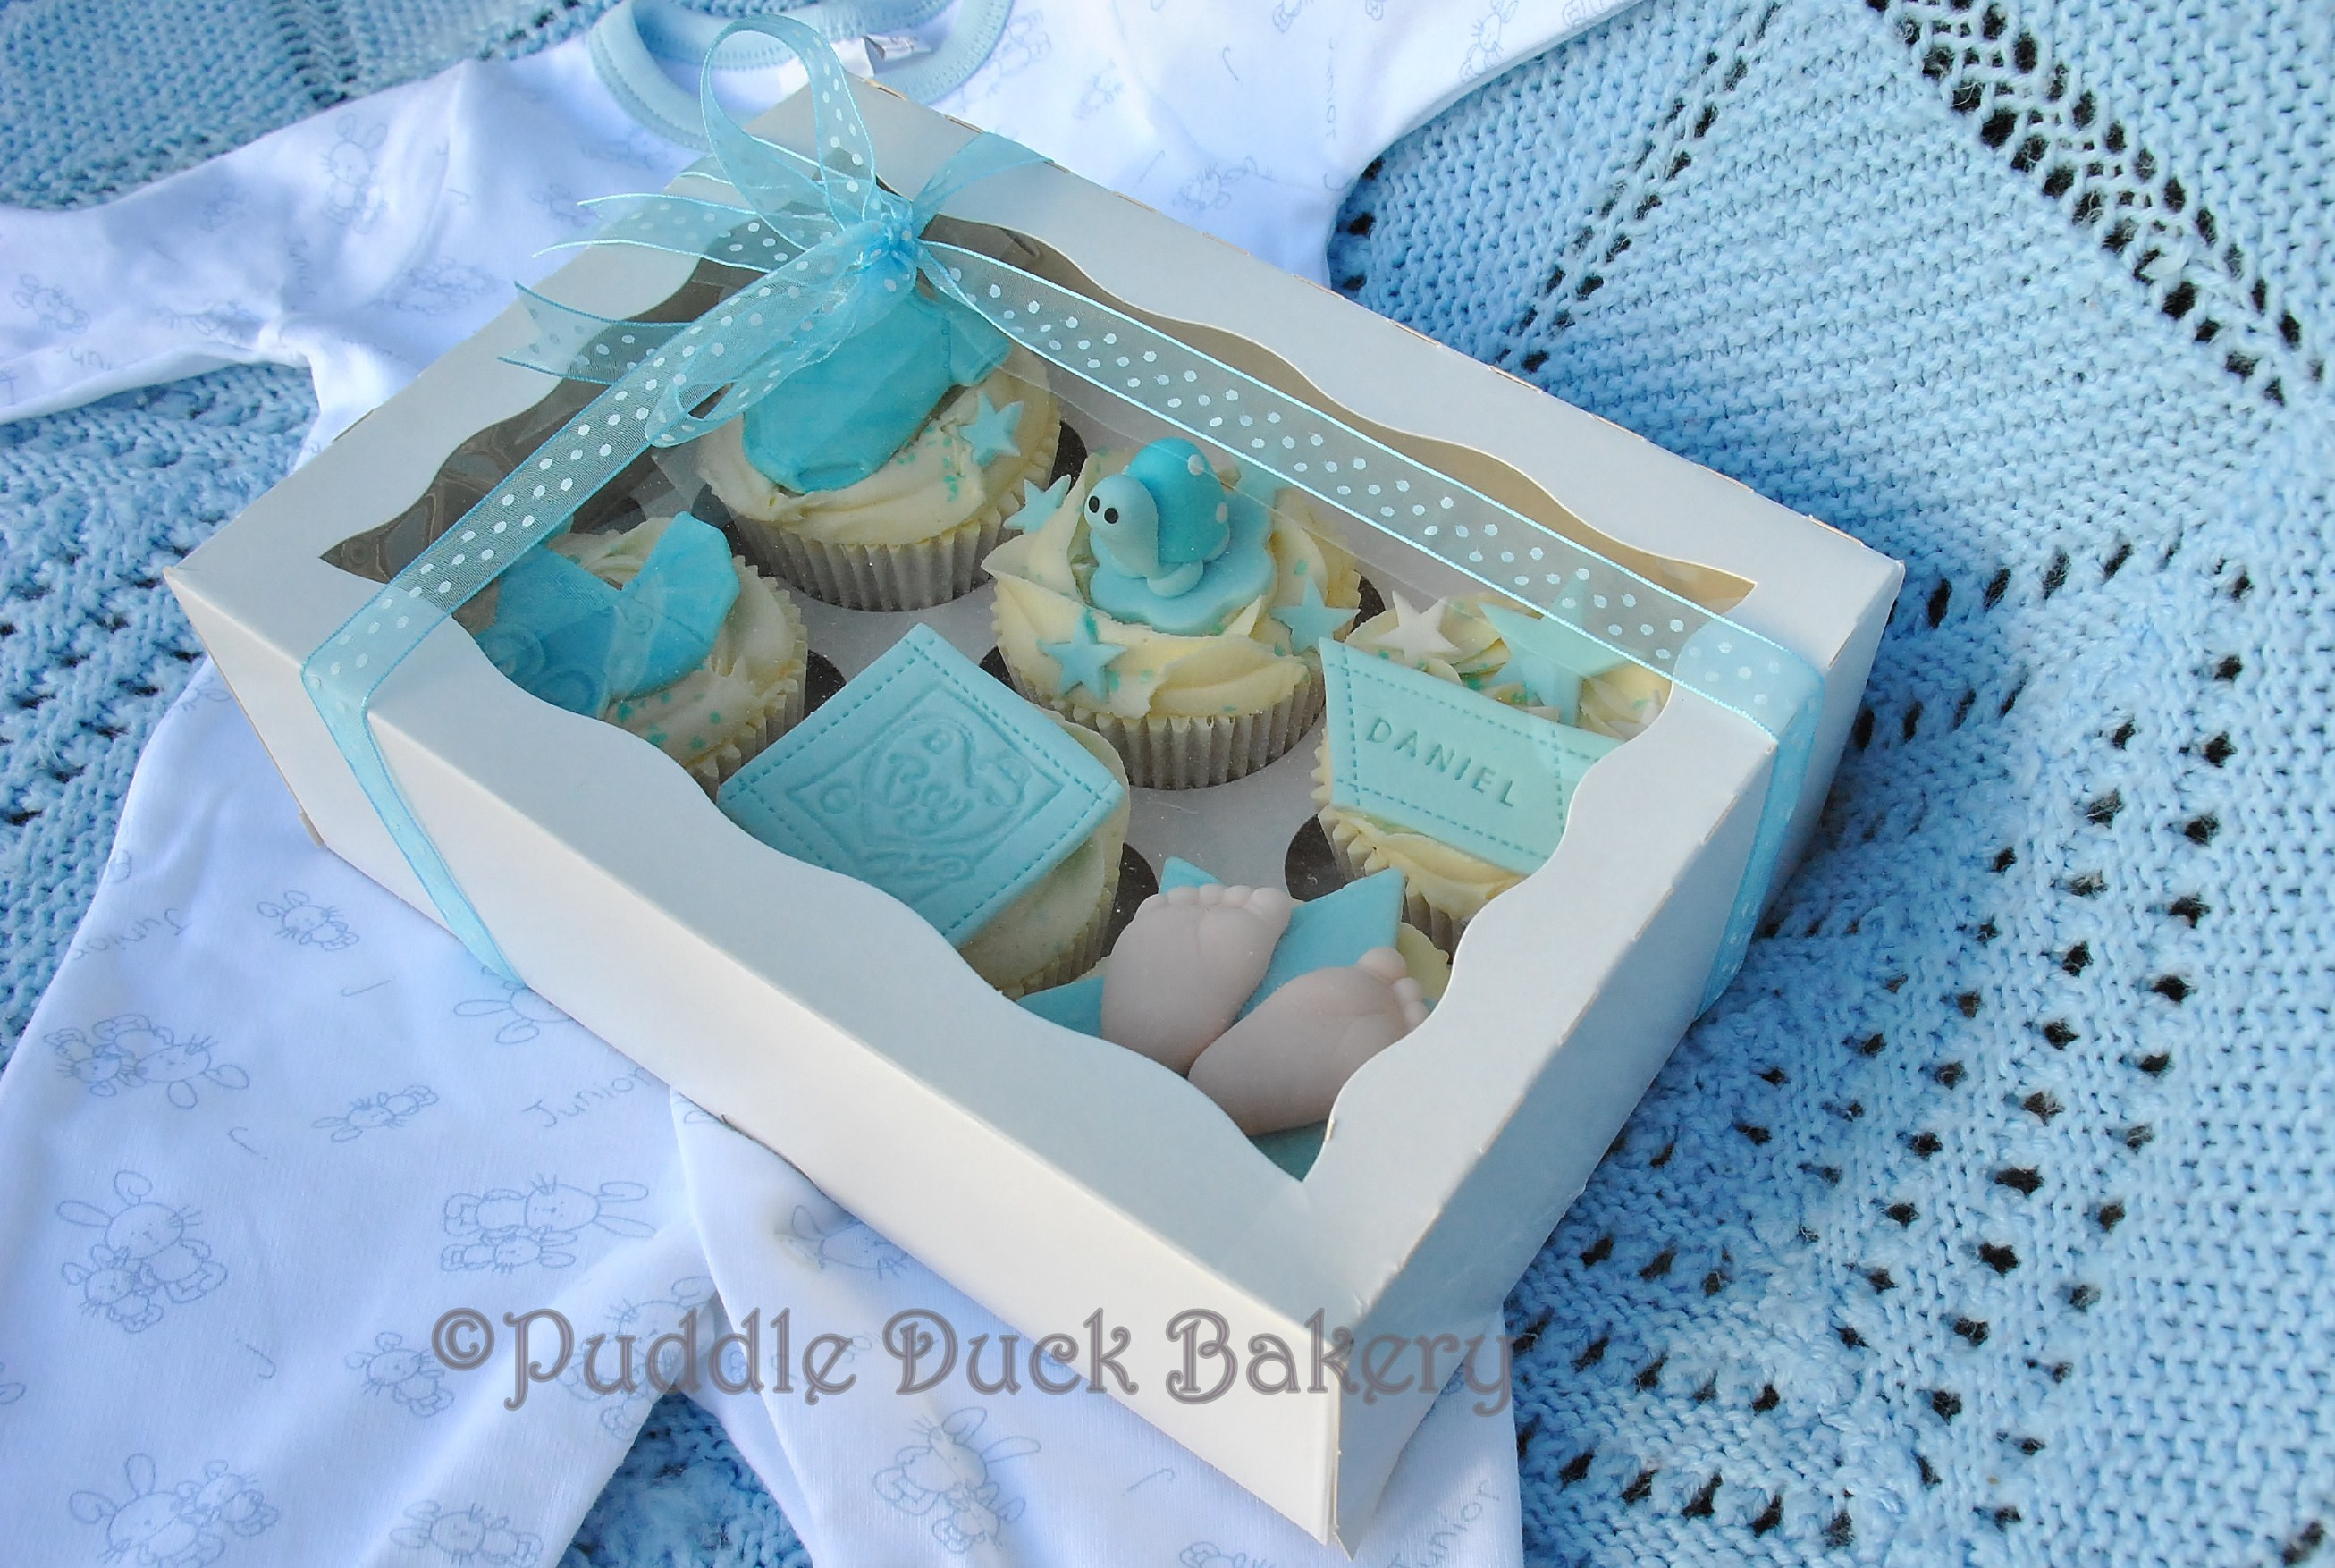 A display box with some cupcakes